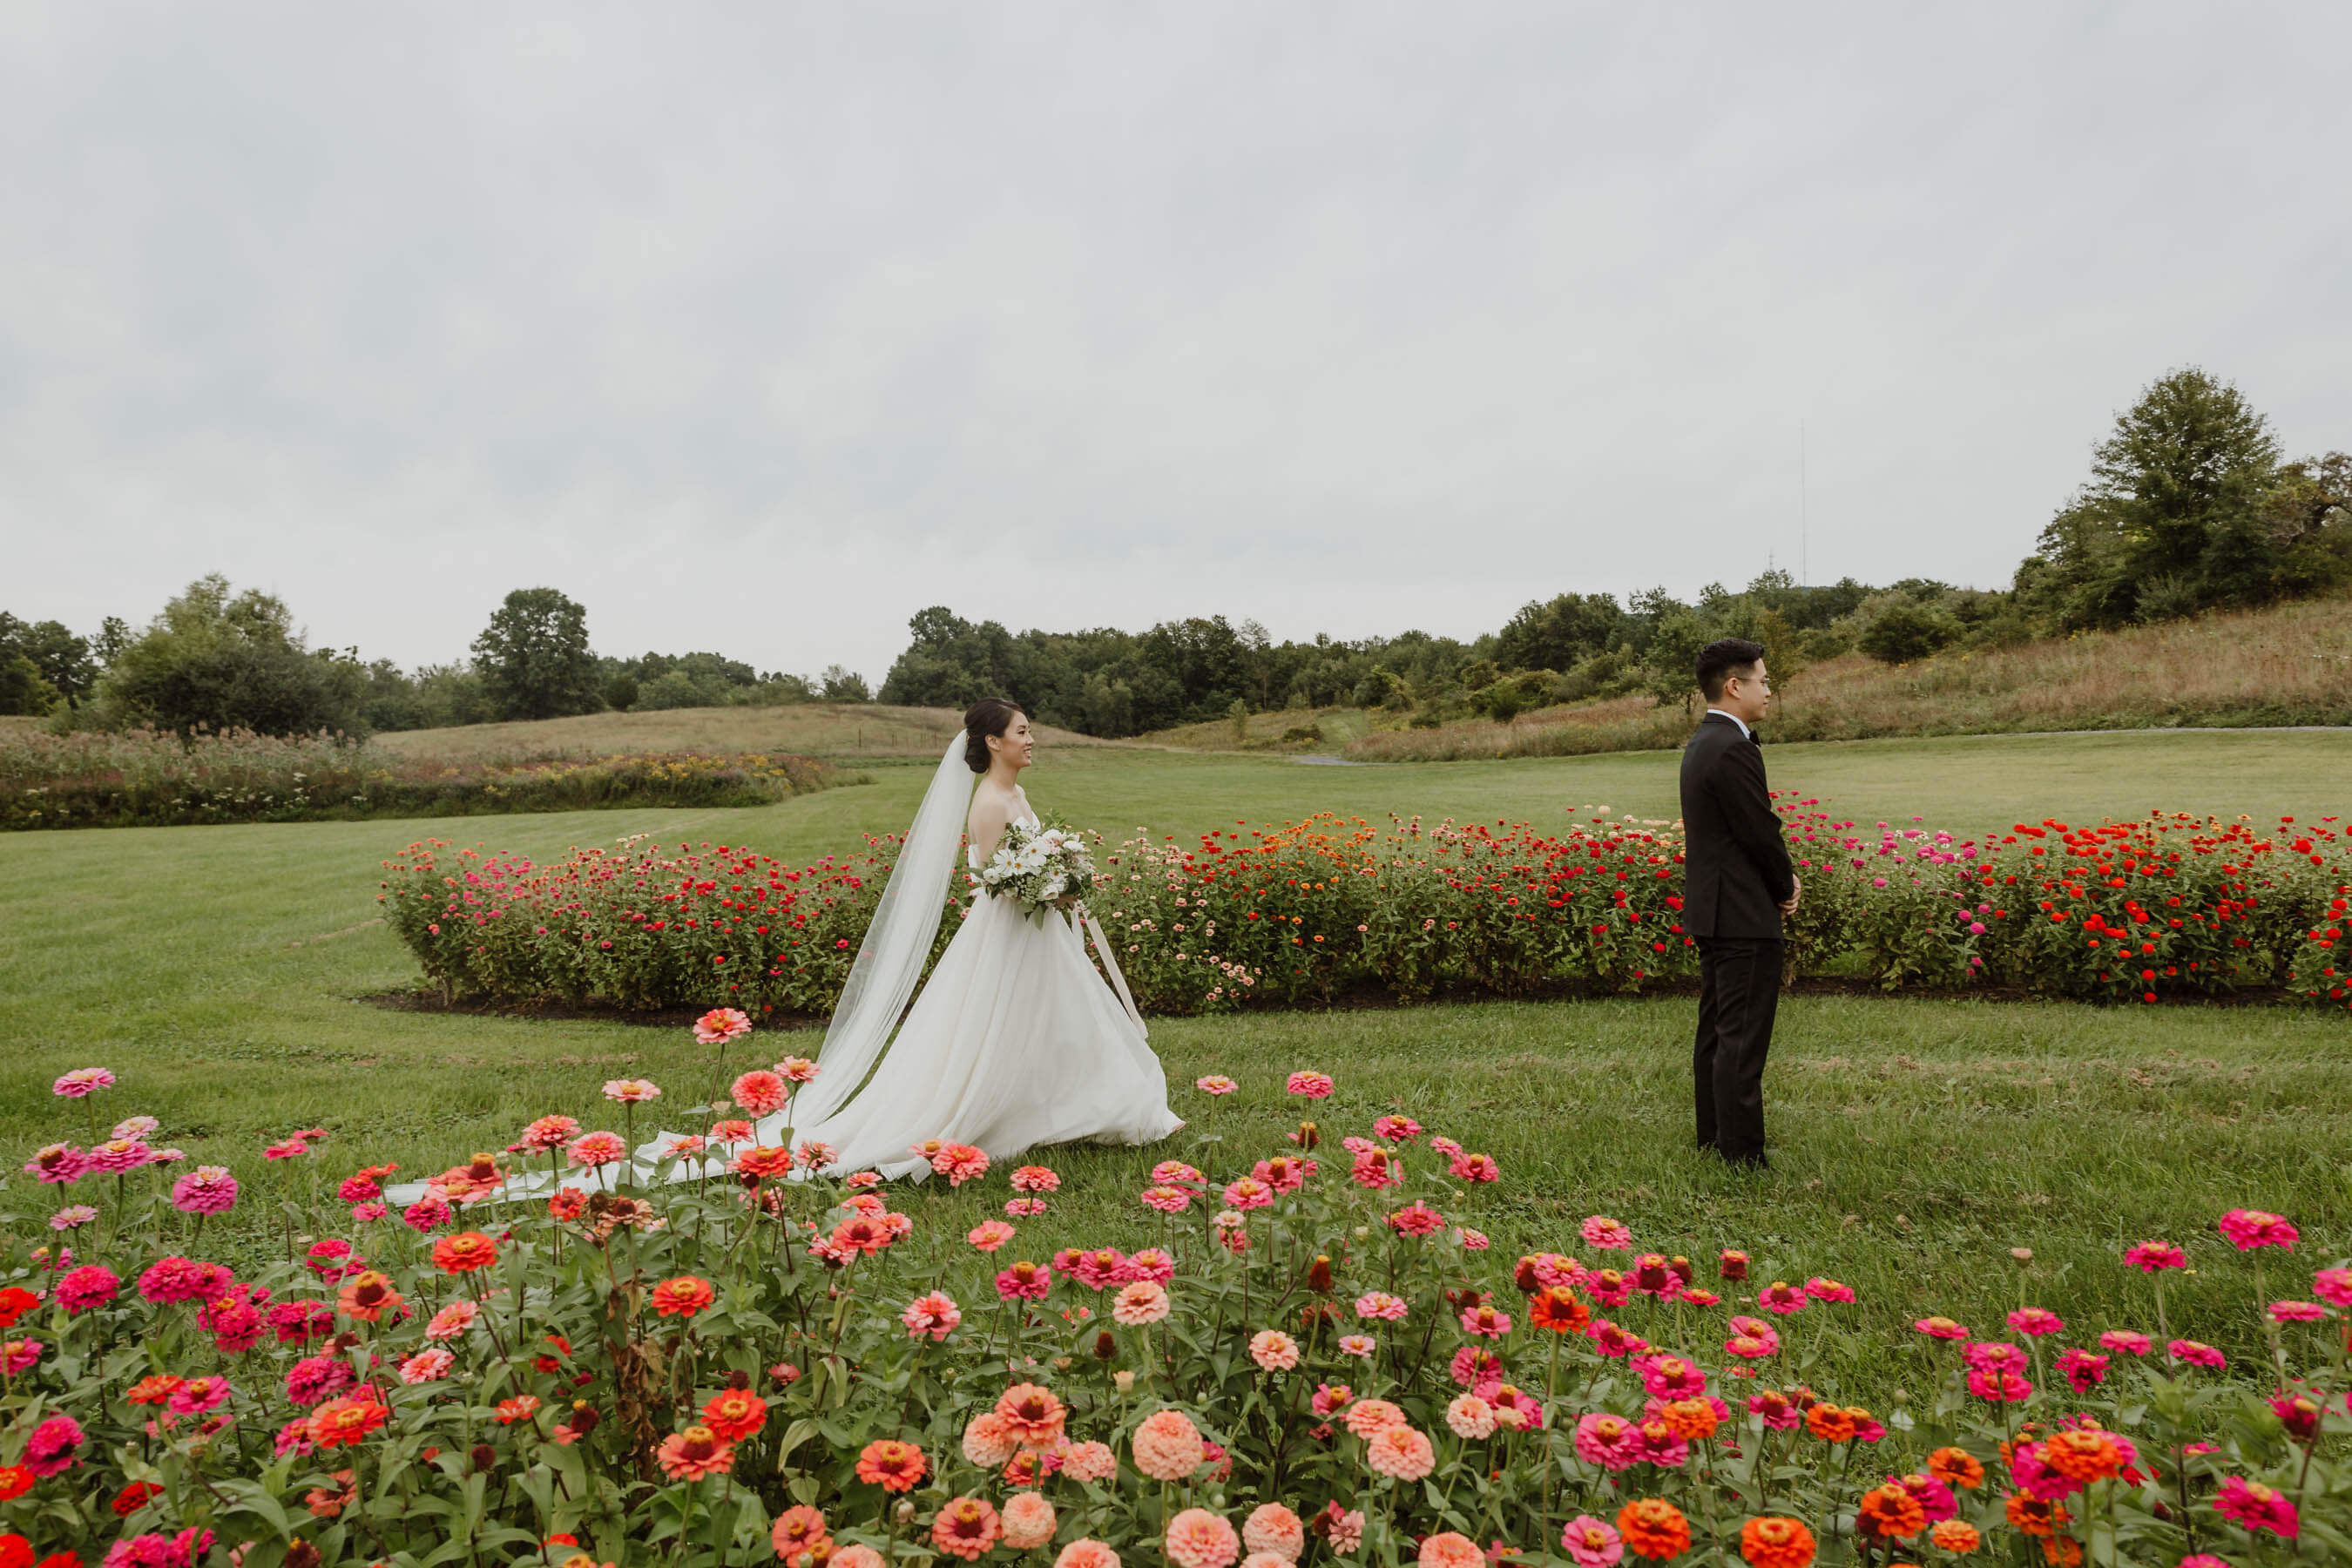 Hudson Valley Farm Weddings